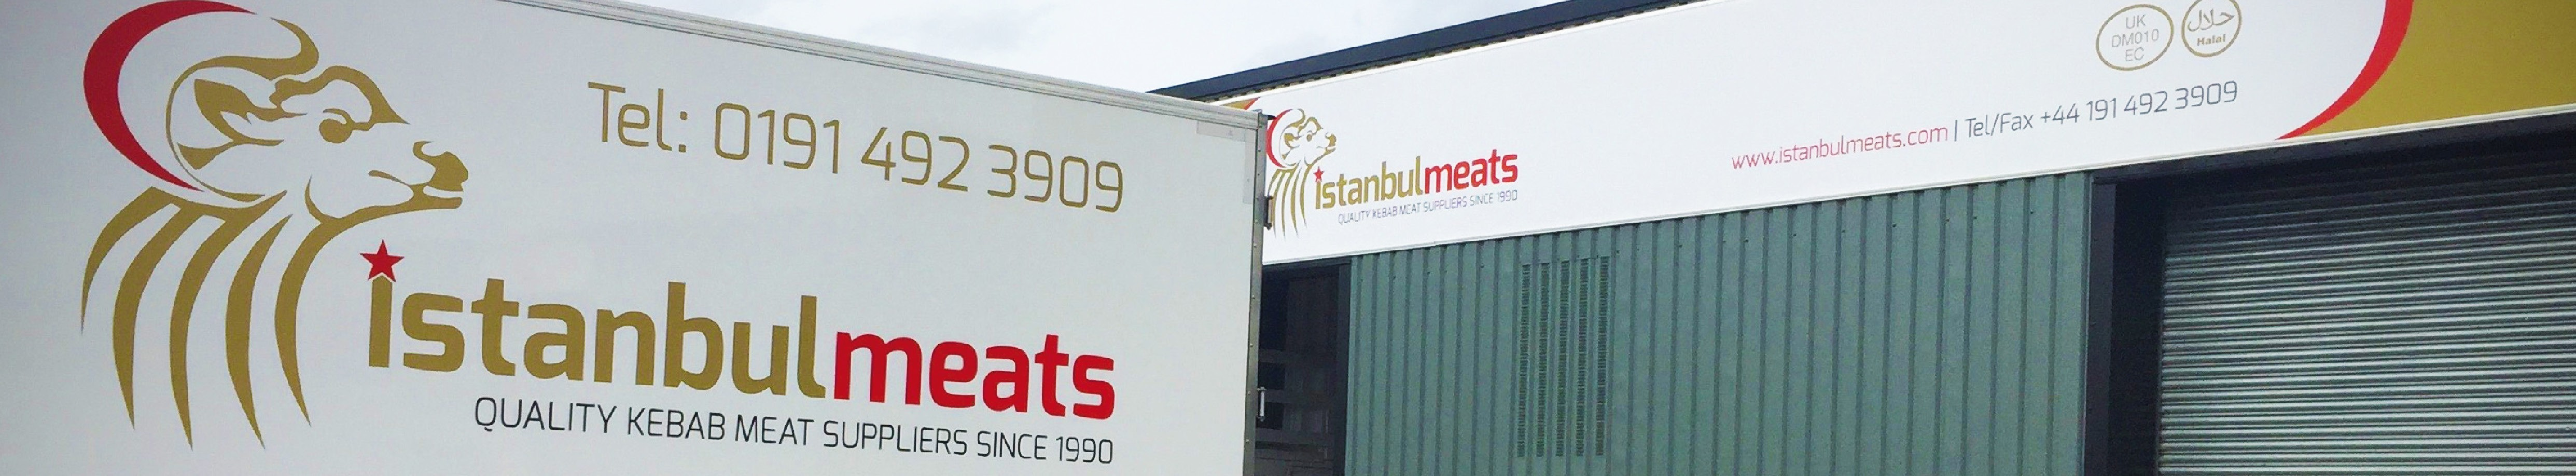 ISTANBUL MEATS LIMITED | LinkedIn